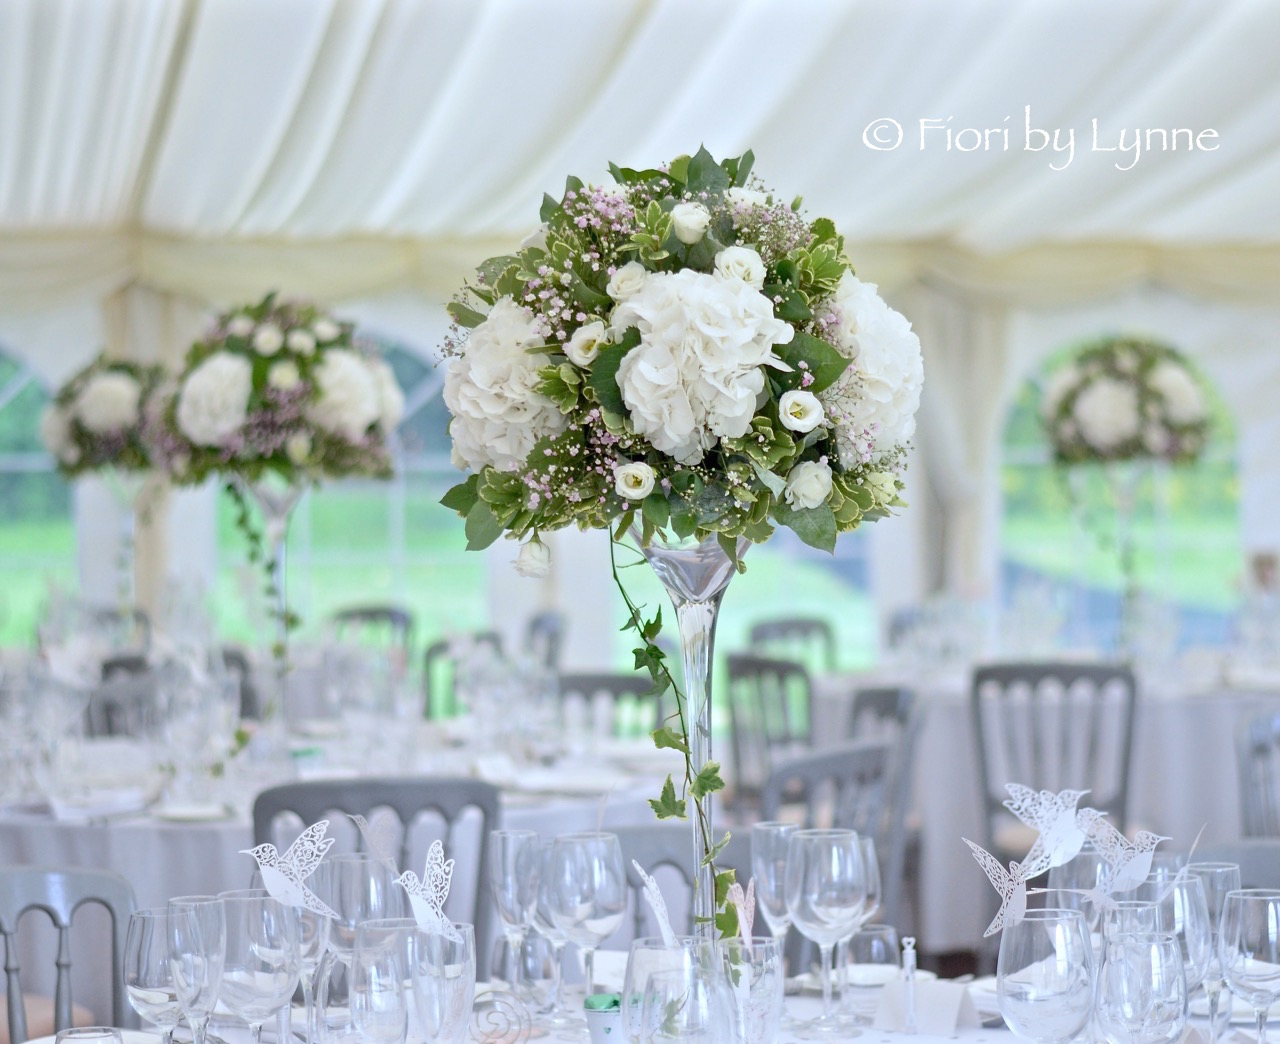 marquee-tall-white-pink-centrpieces-hydrangea-gyp1.jpg